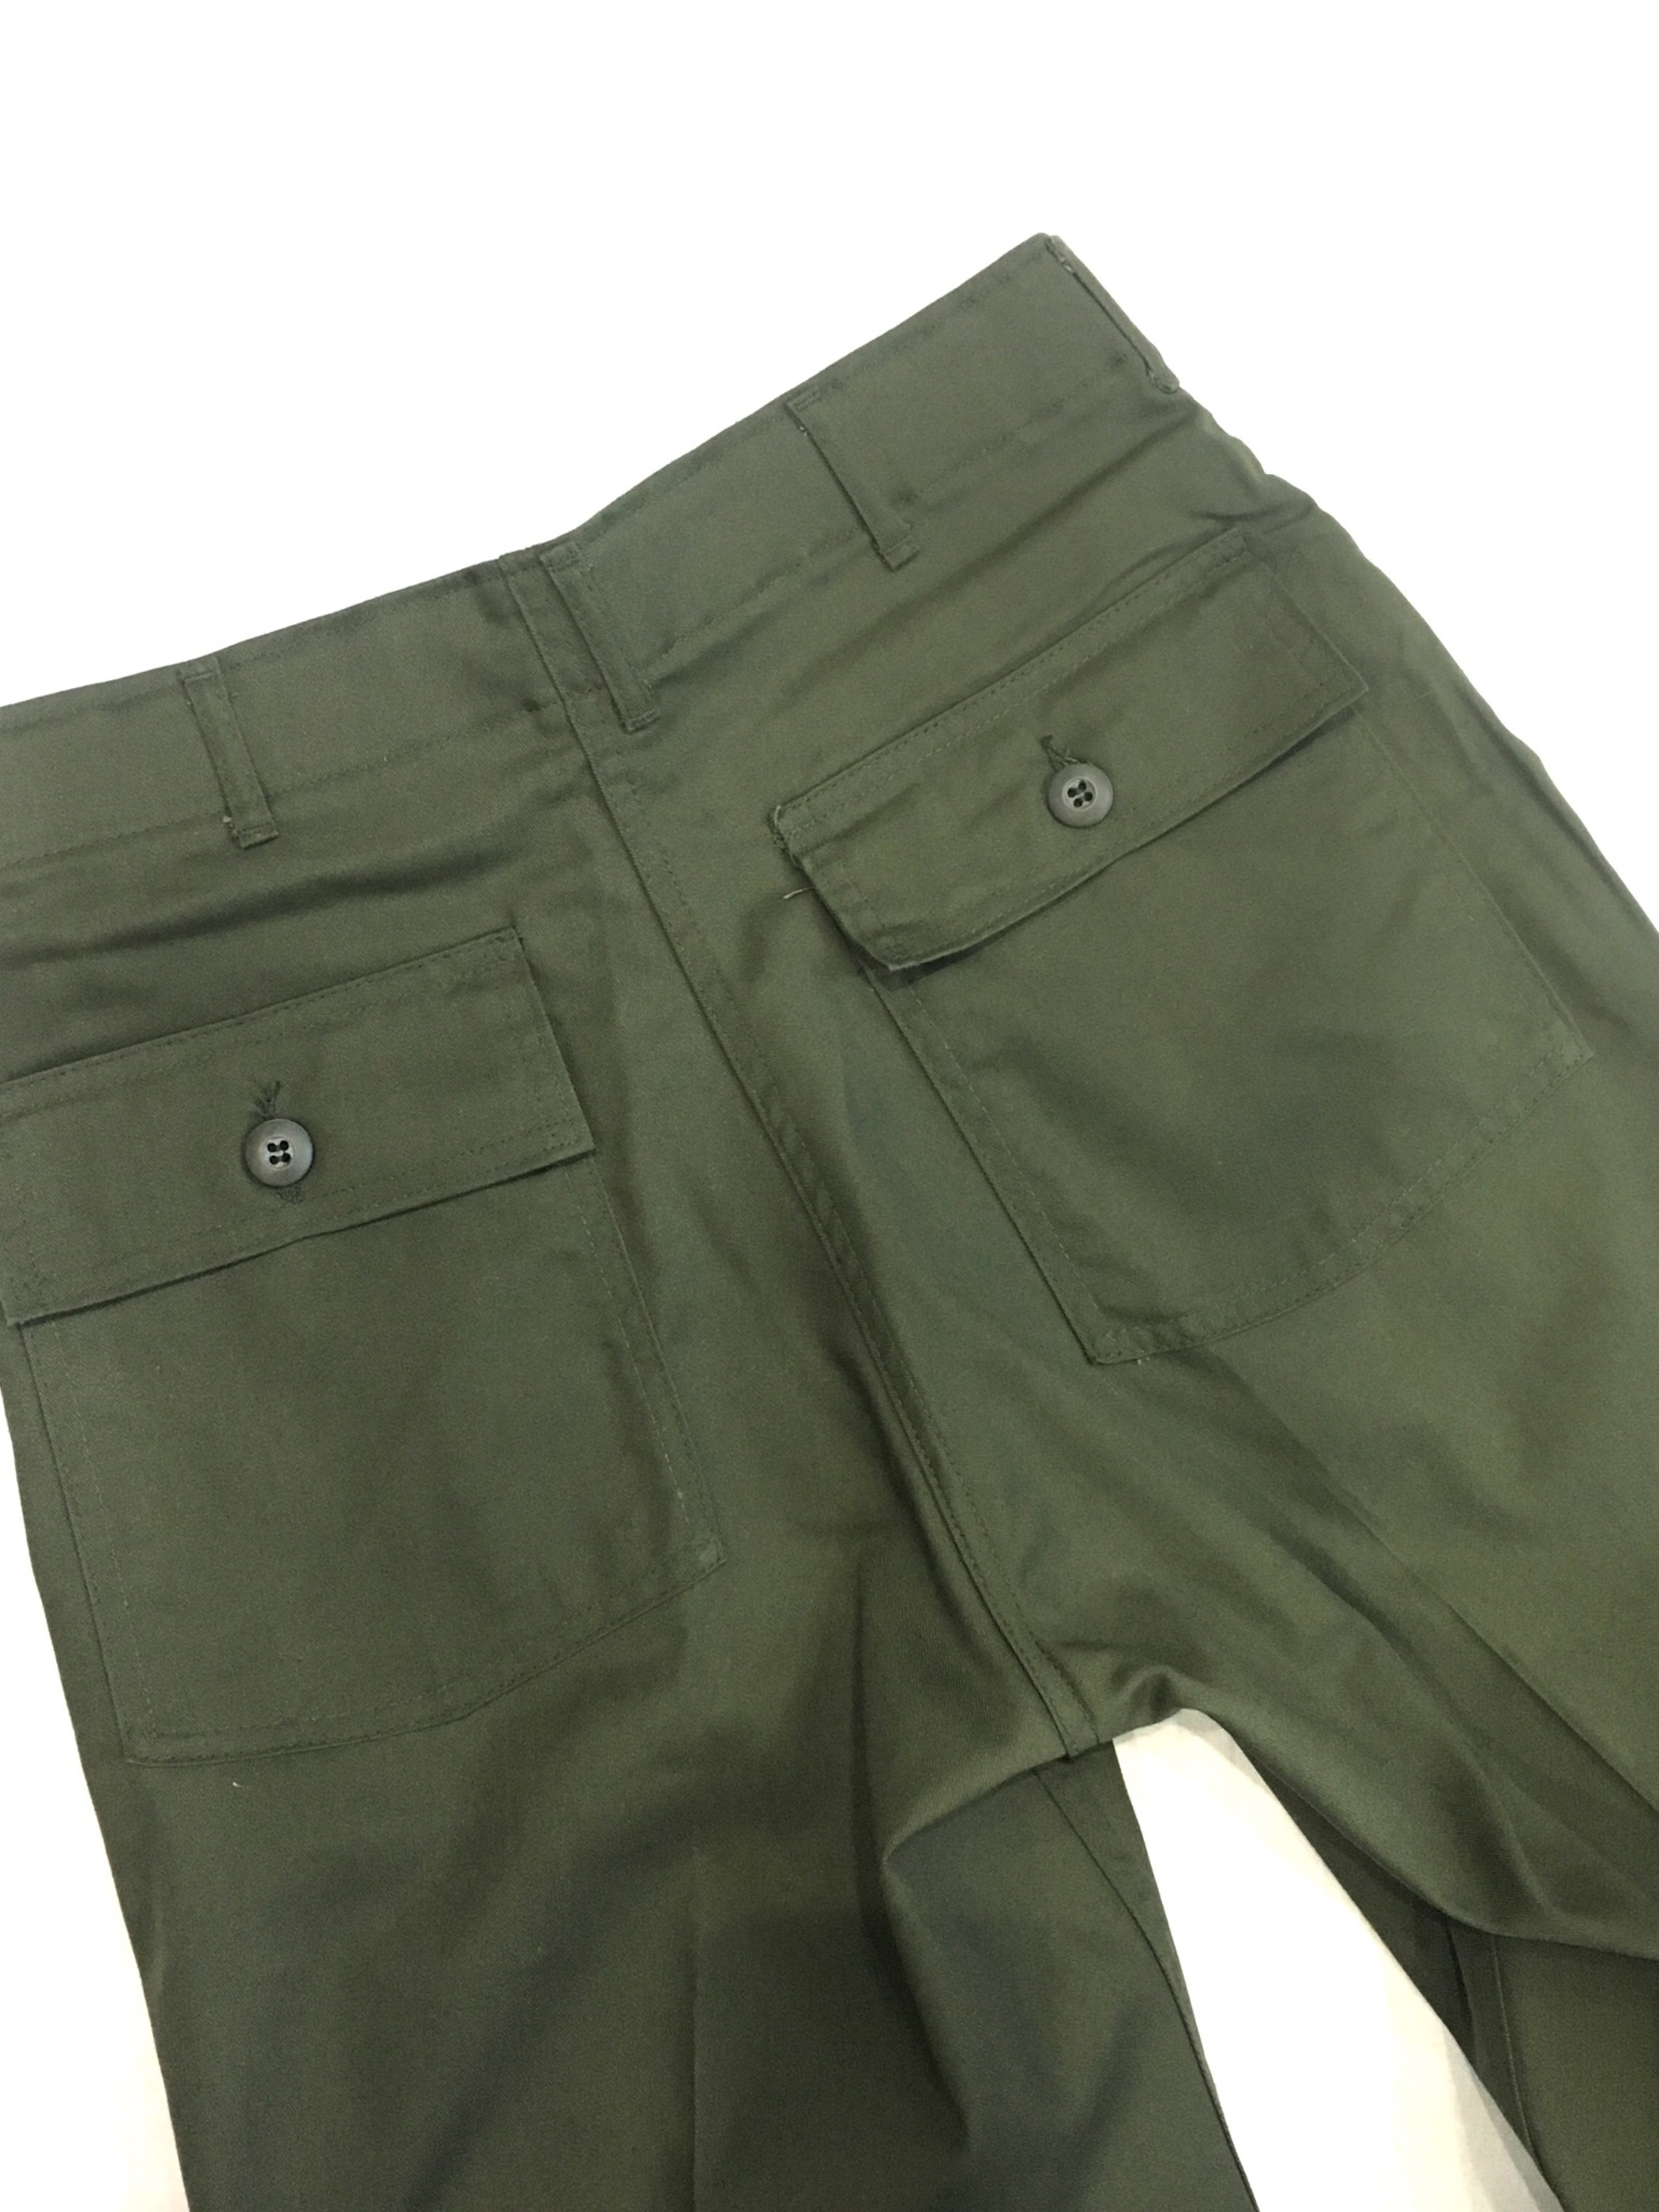 Dead stock U.S.Army utility durable press trousers